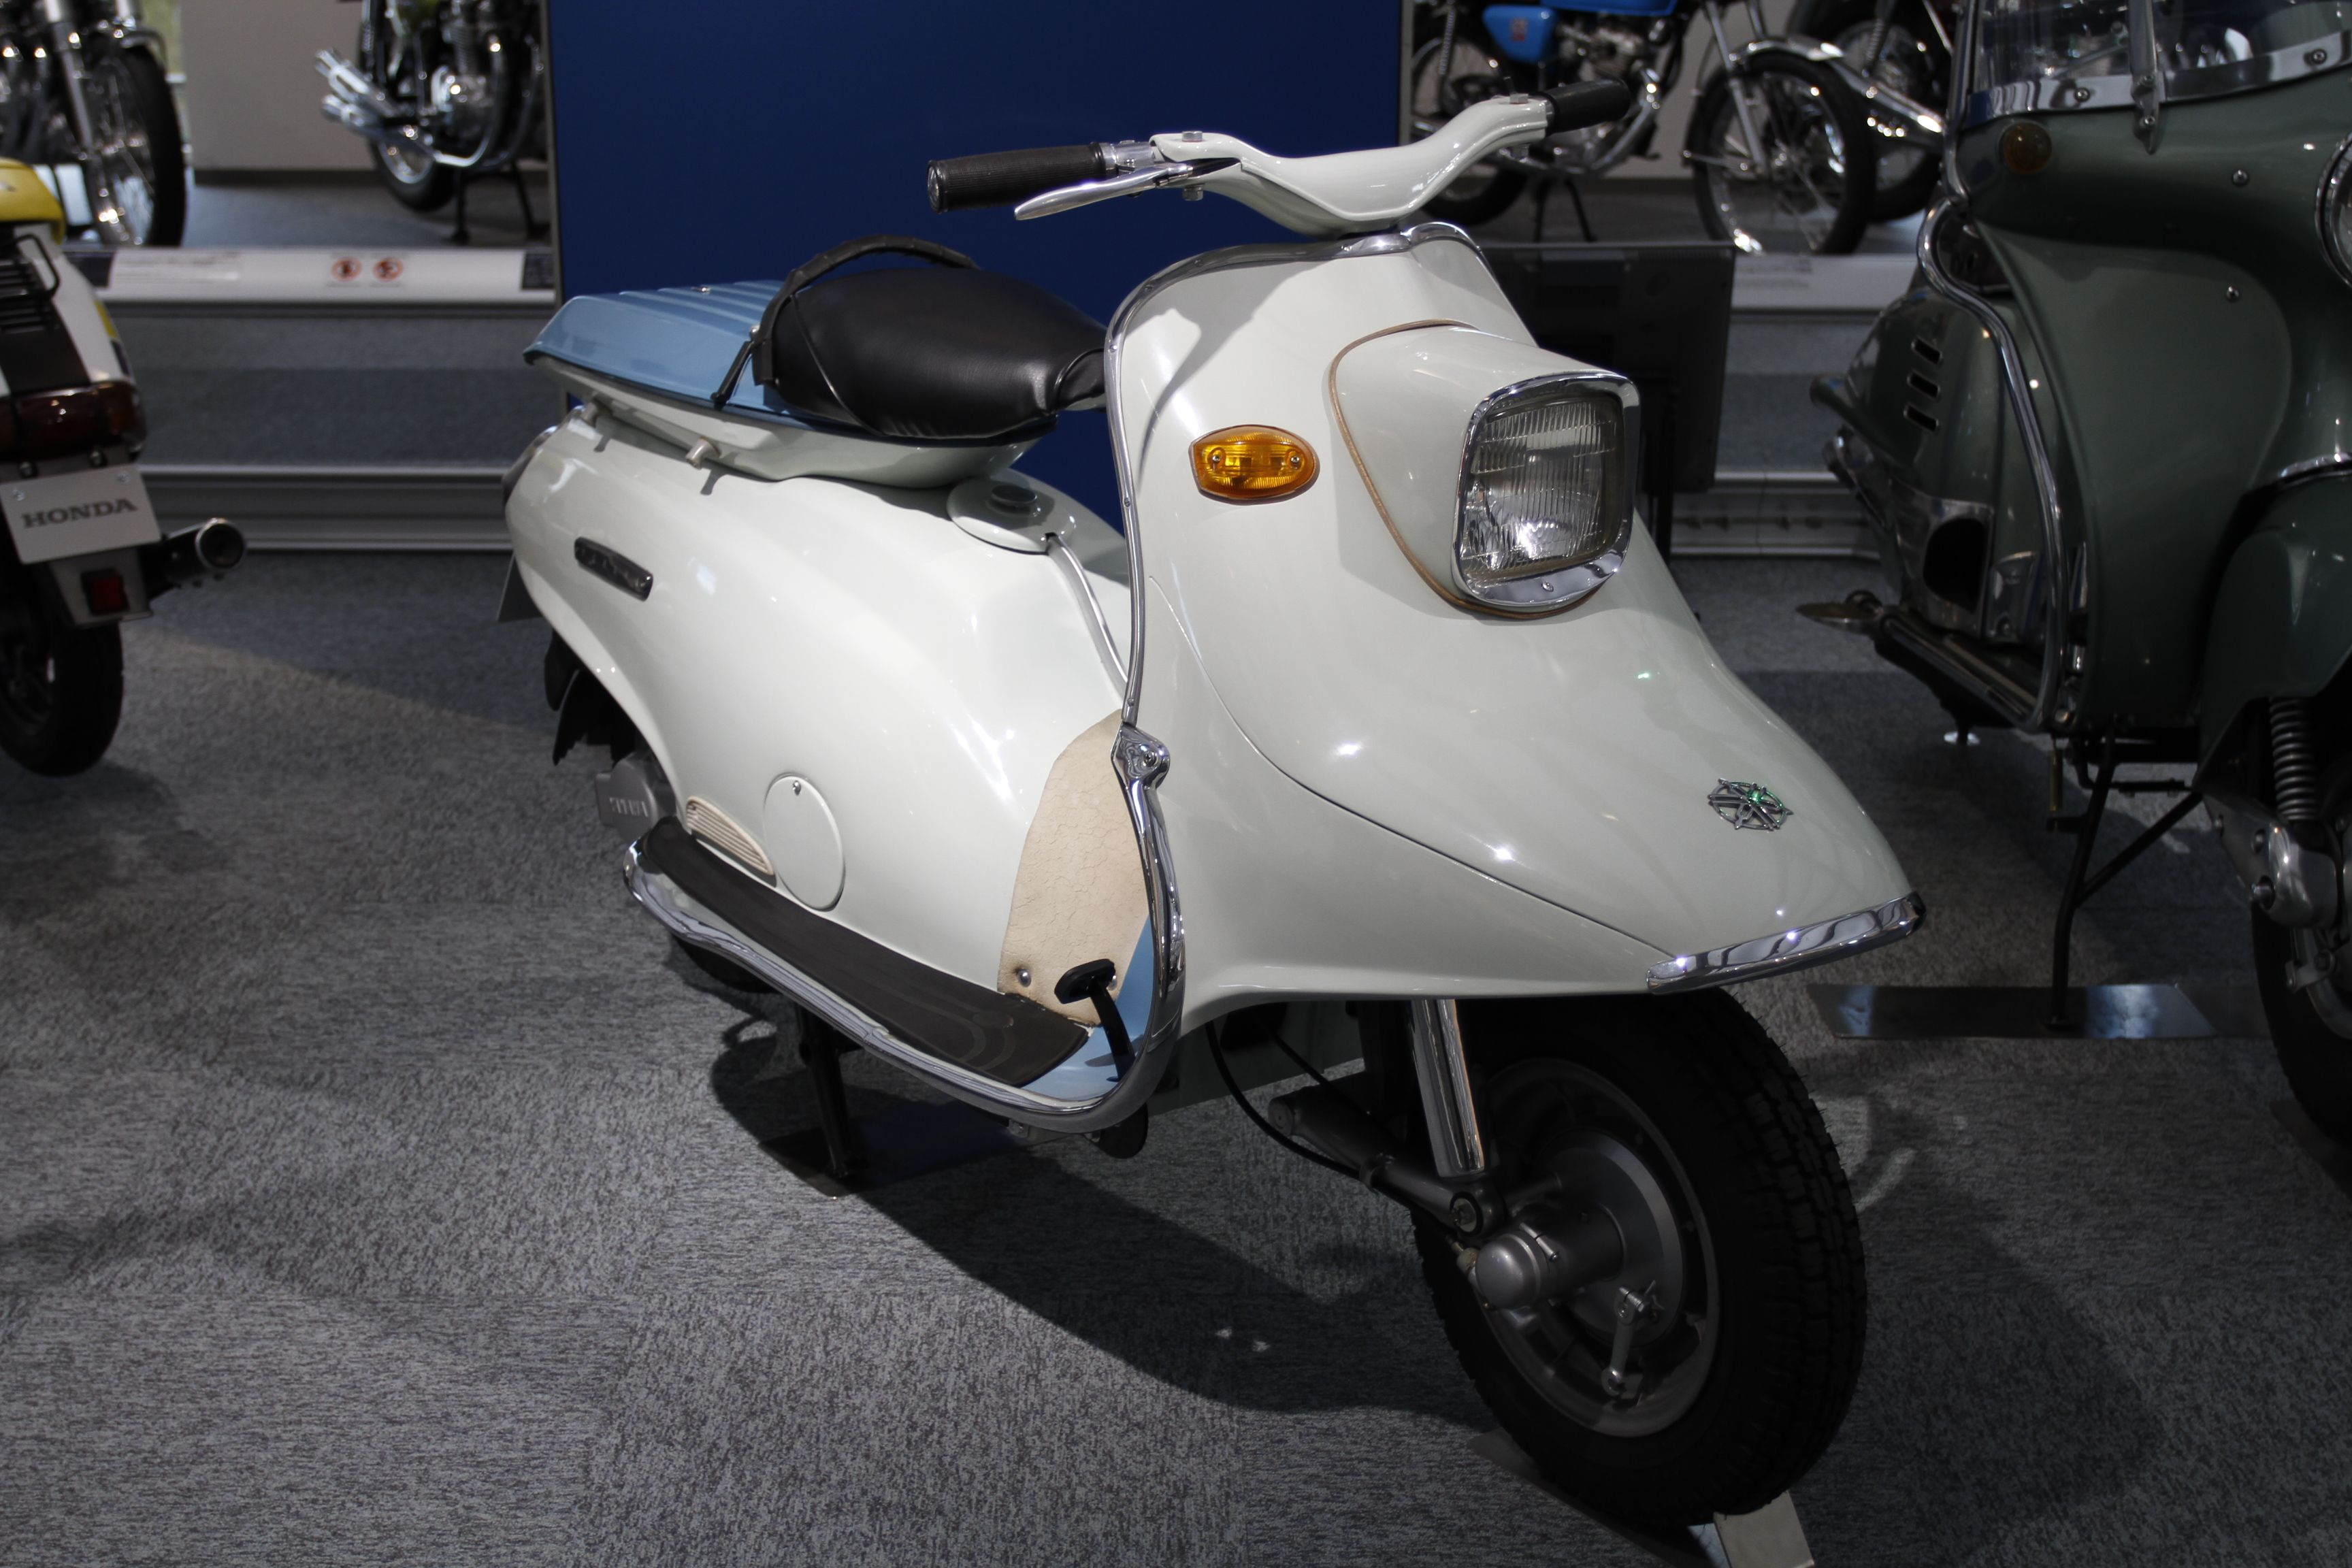 1960 Yamaha Scooter Sc 1 Japan Yamahas First Scooter Produced